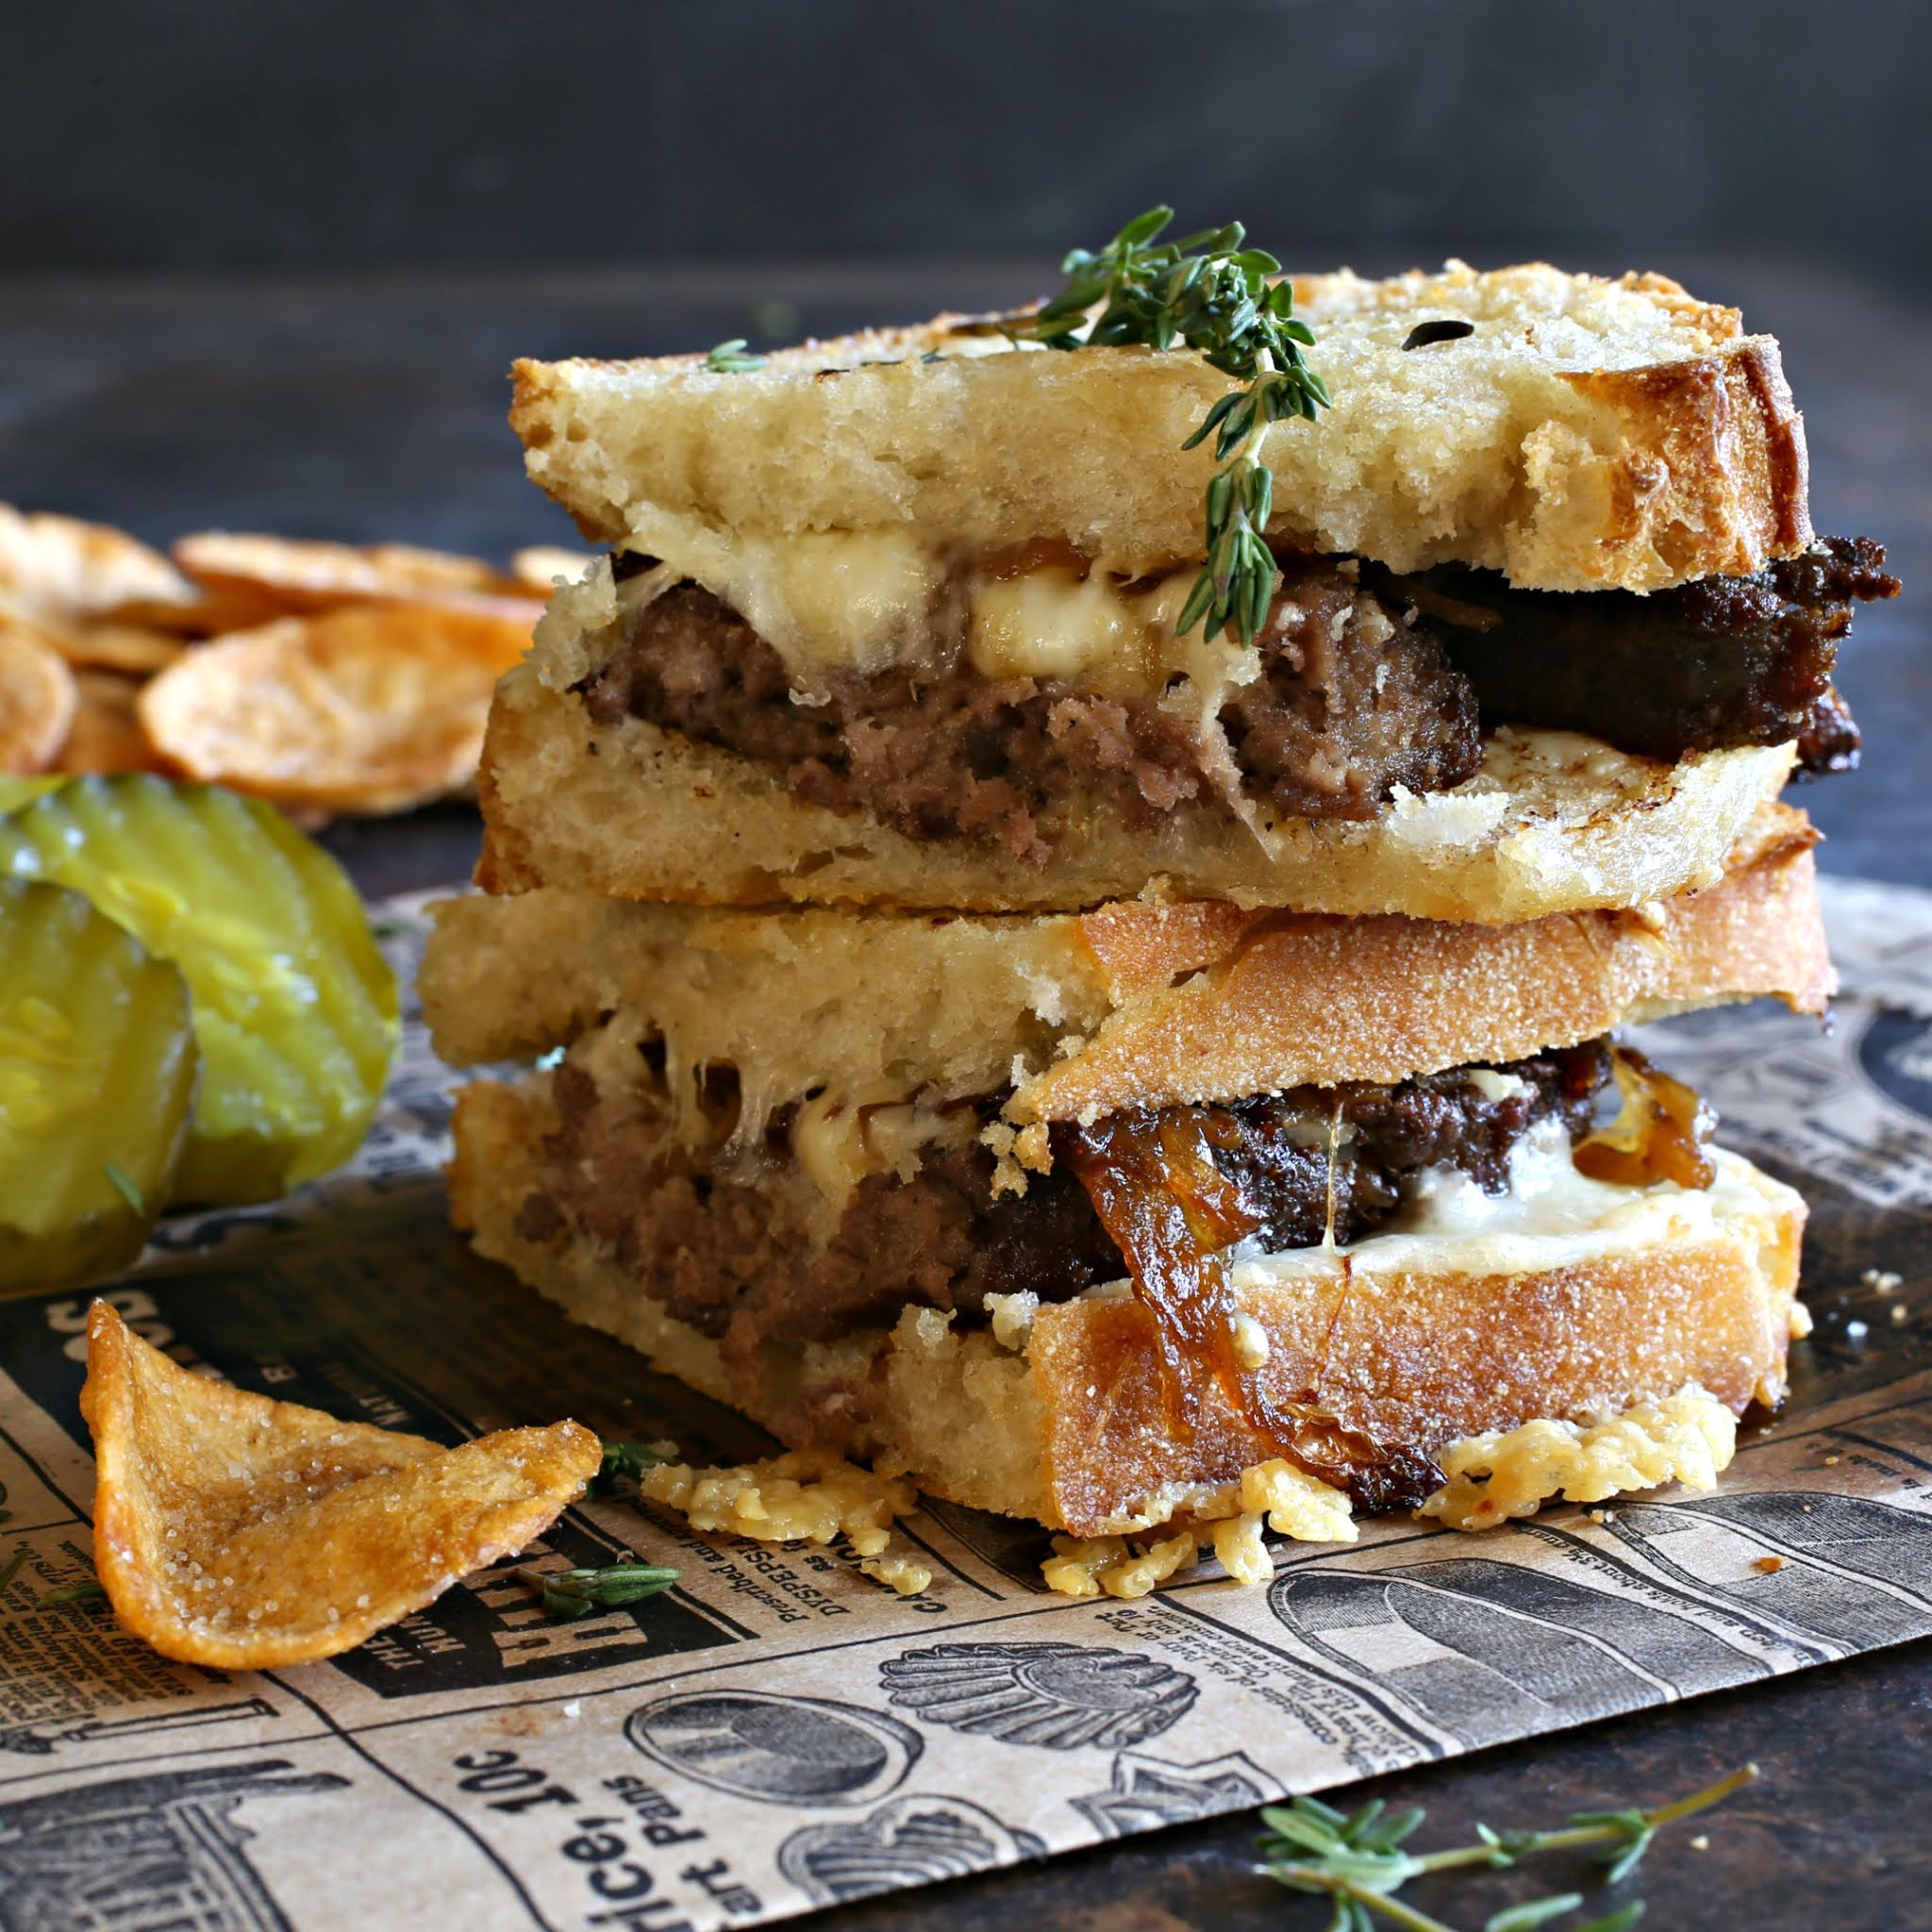 Grilled beef and Gruyere sandwich melts with caramelized onions